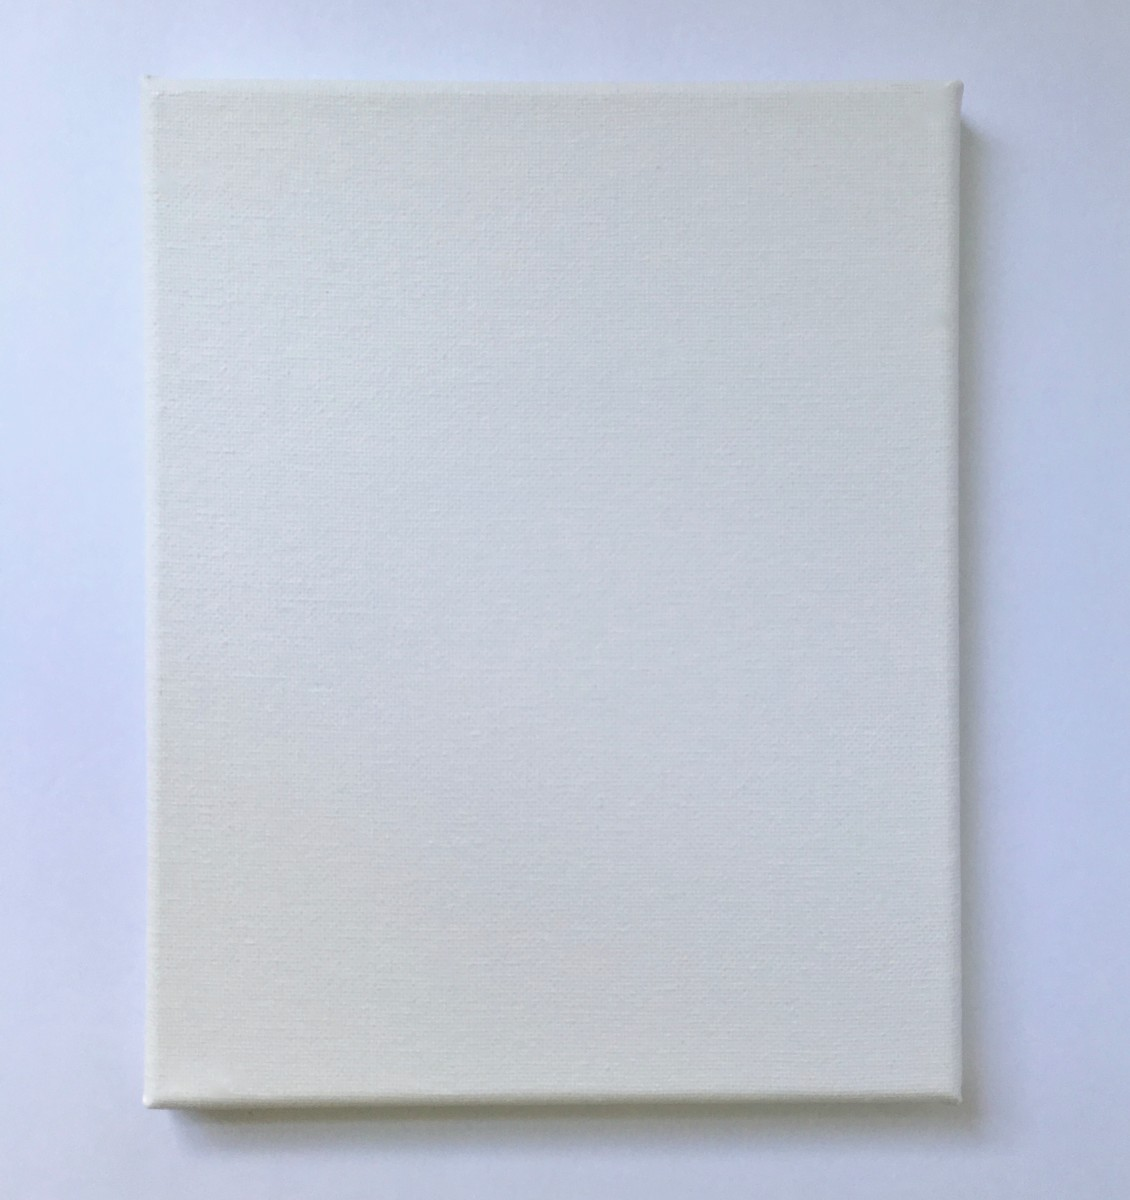 A stretched canvas for pour painting.